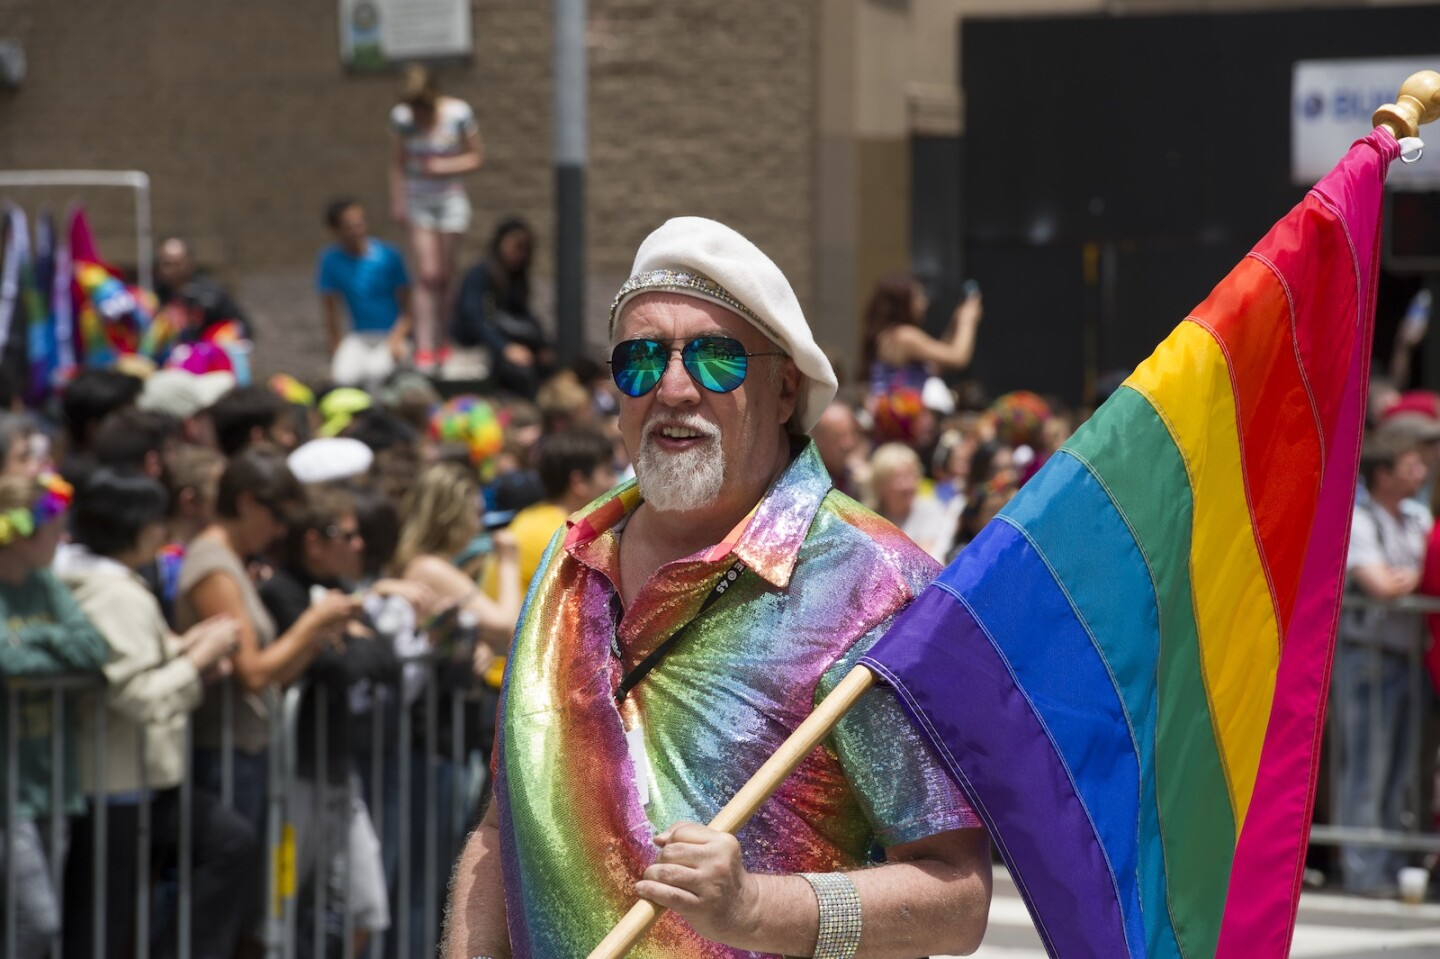 Pride rainbow flag creator Gilbert Baker marches during the 2015 San Francisco Pride Parade on June 28, 2015 in San Francisco, California. | Photo: Arun Nevader/Wire Image